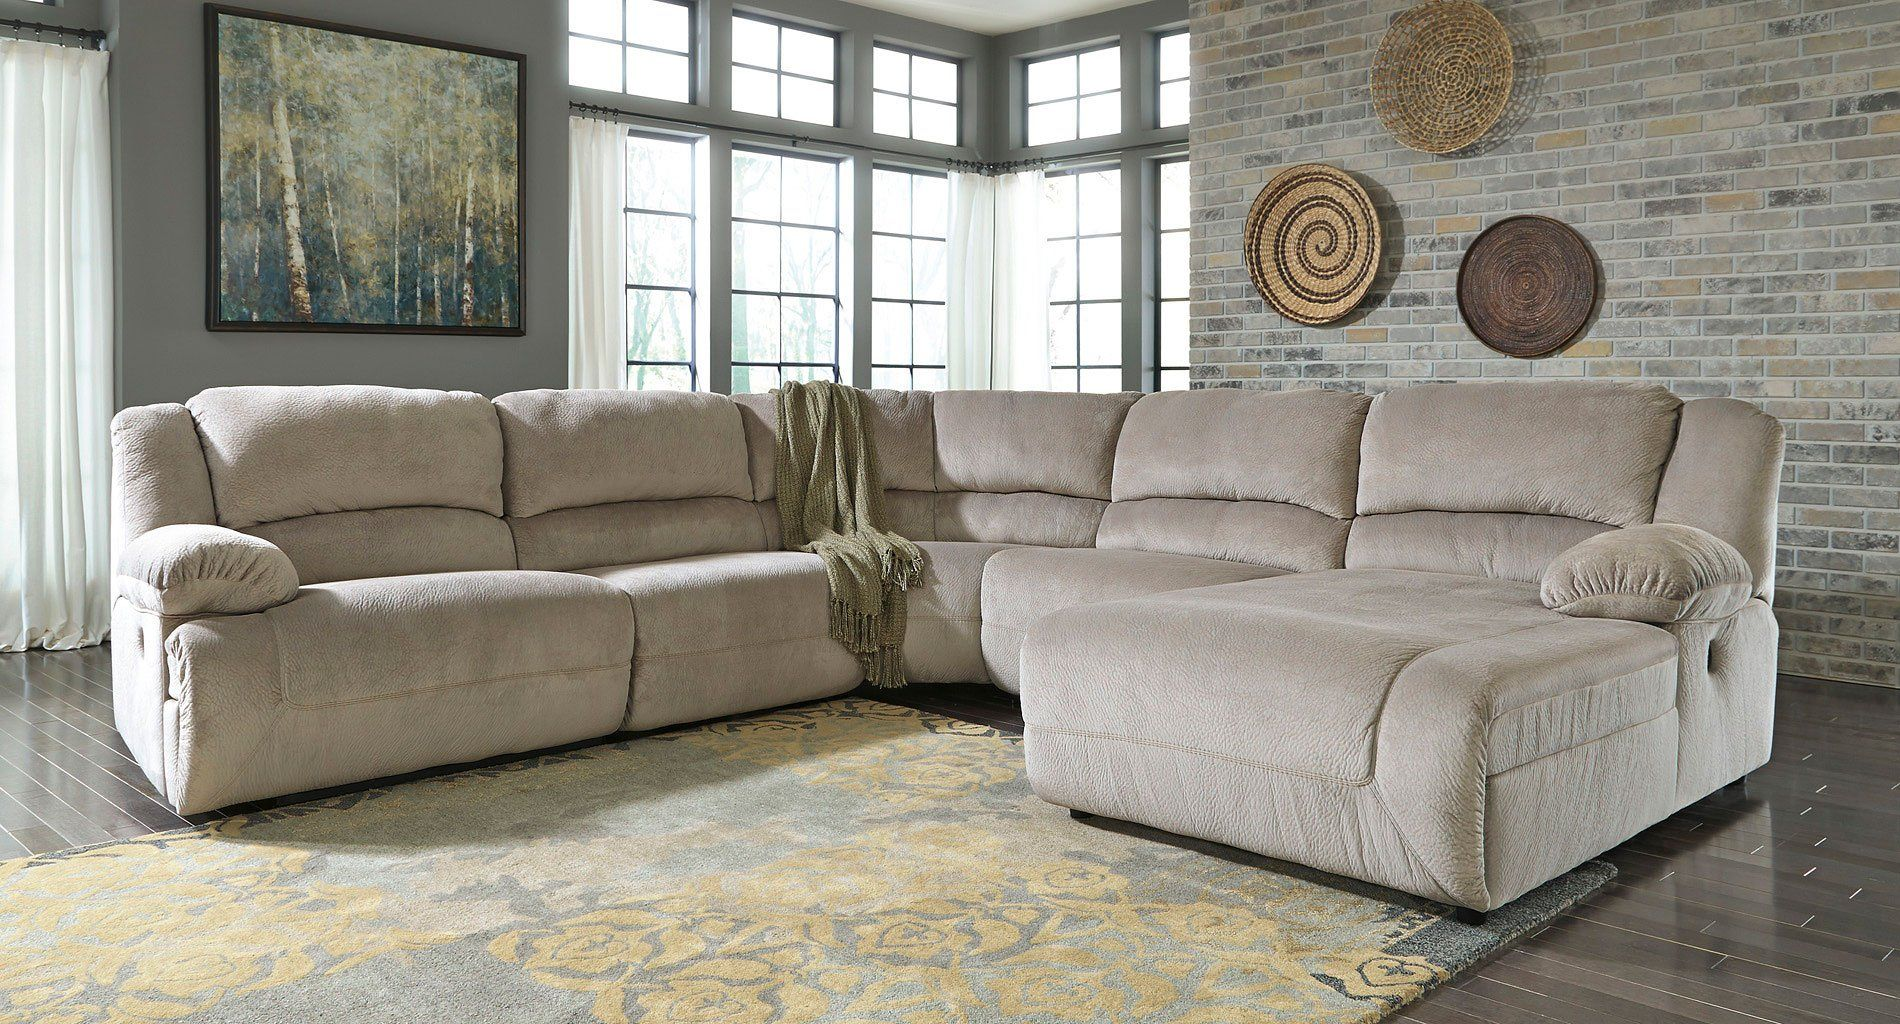 Toletta Granite Reclining Sectional Sectional Sofa With Recliner Reclining Sectional With Chaise Reclining Sectional